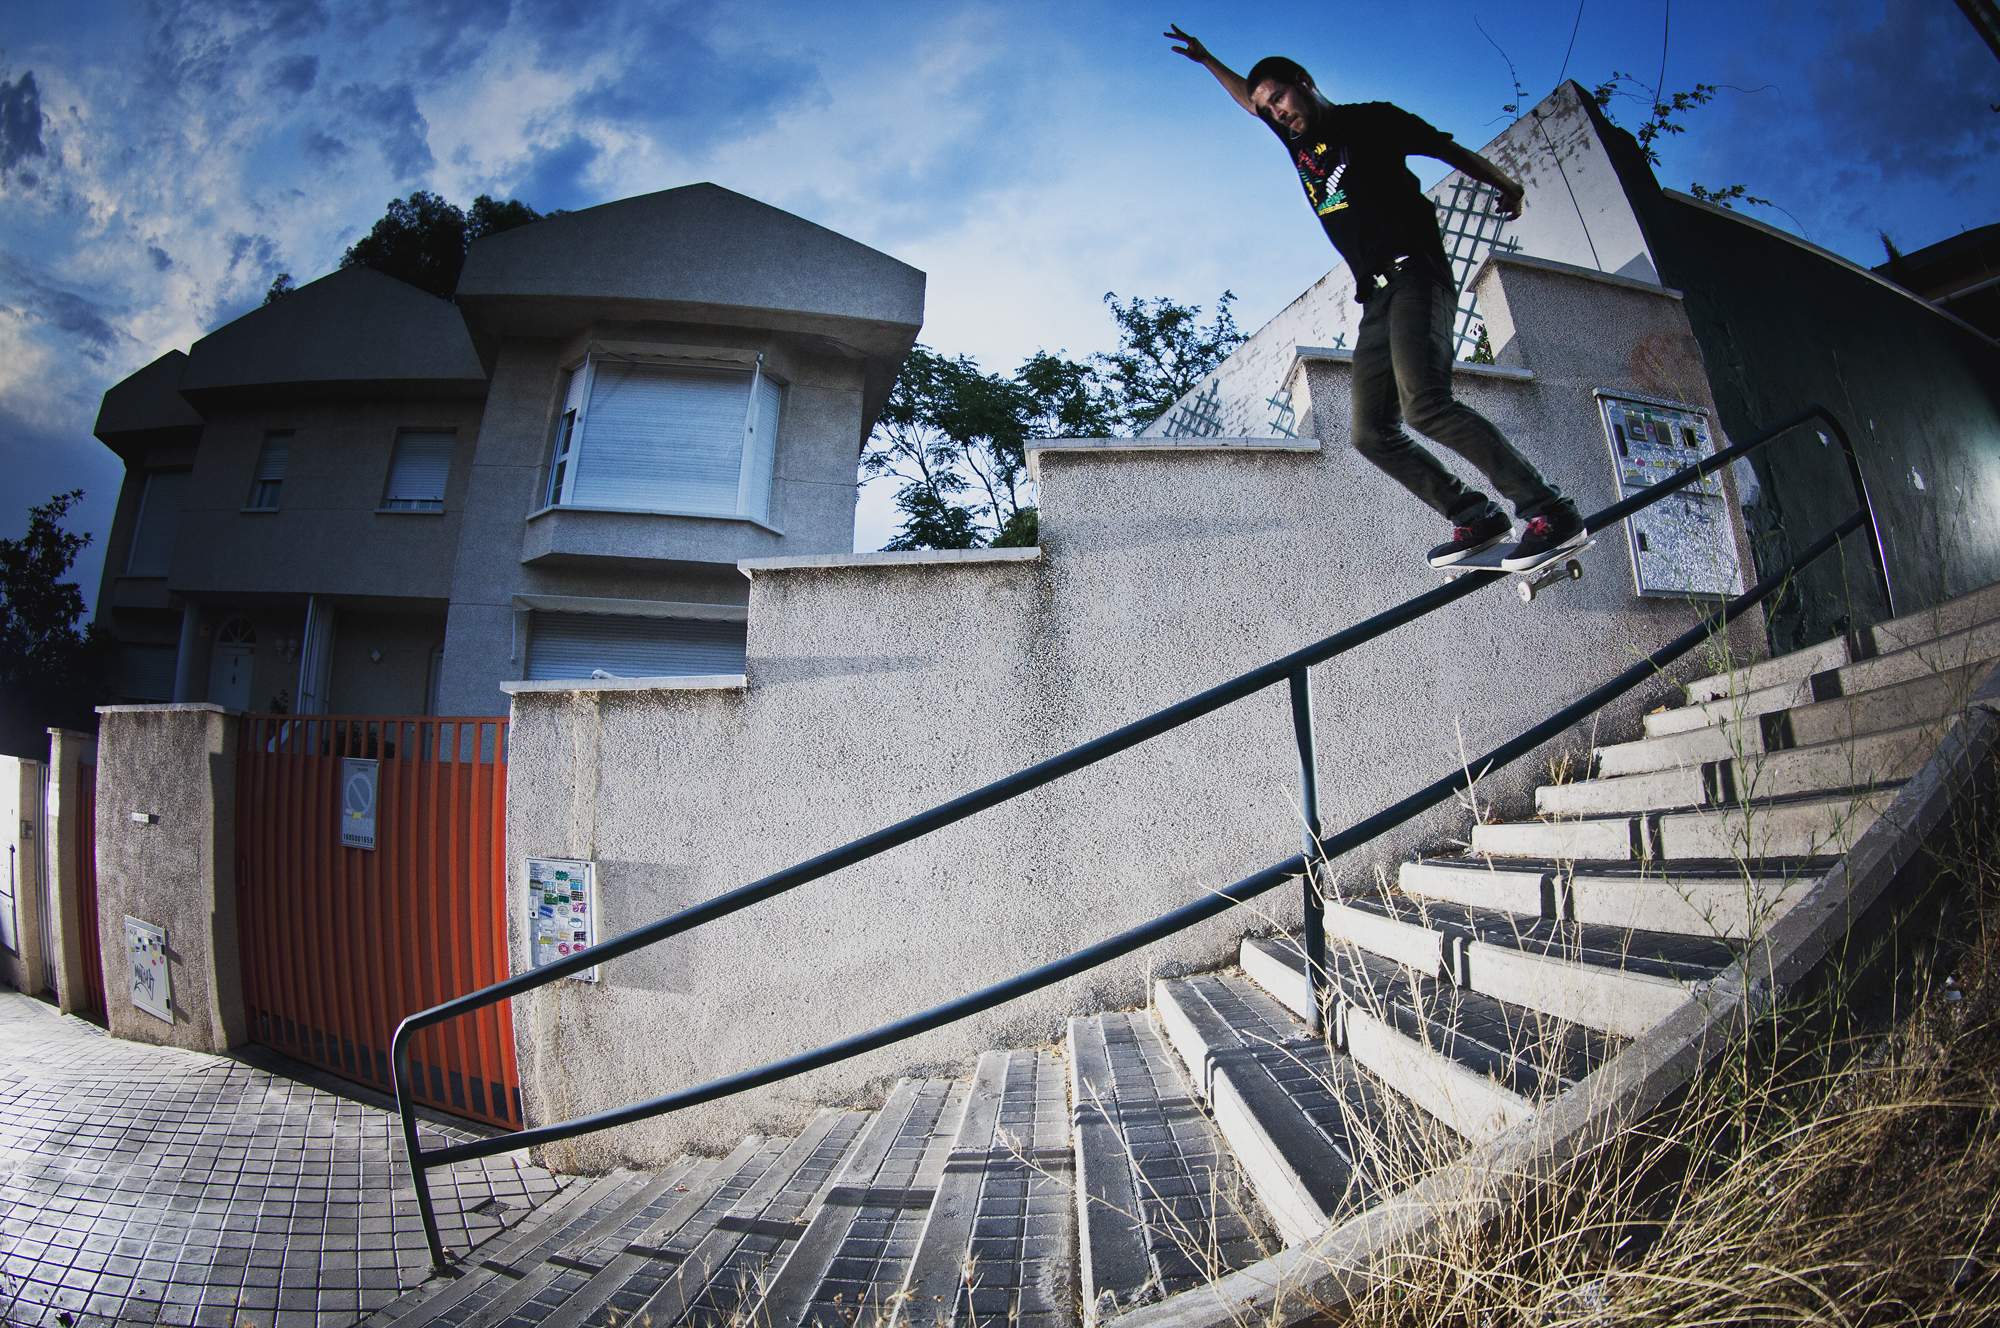 Diego Cano - Imagine Skateboards Team Rider